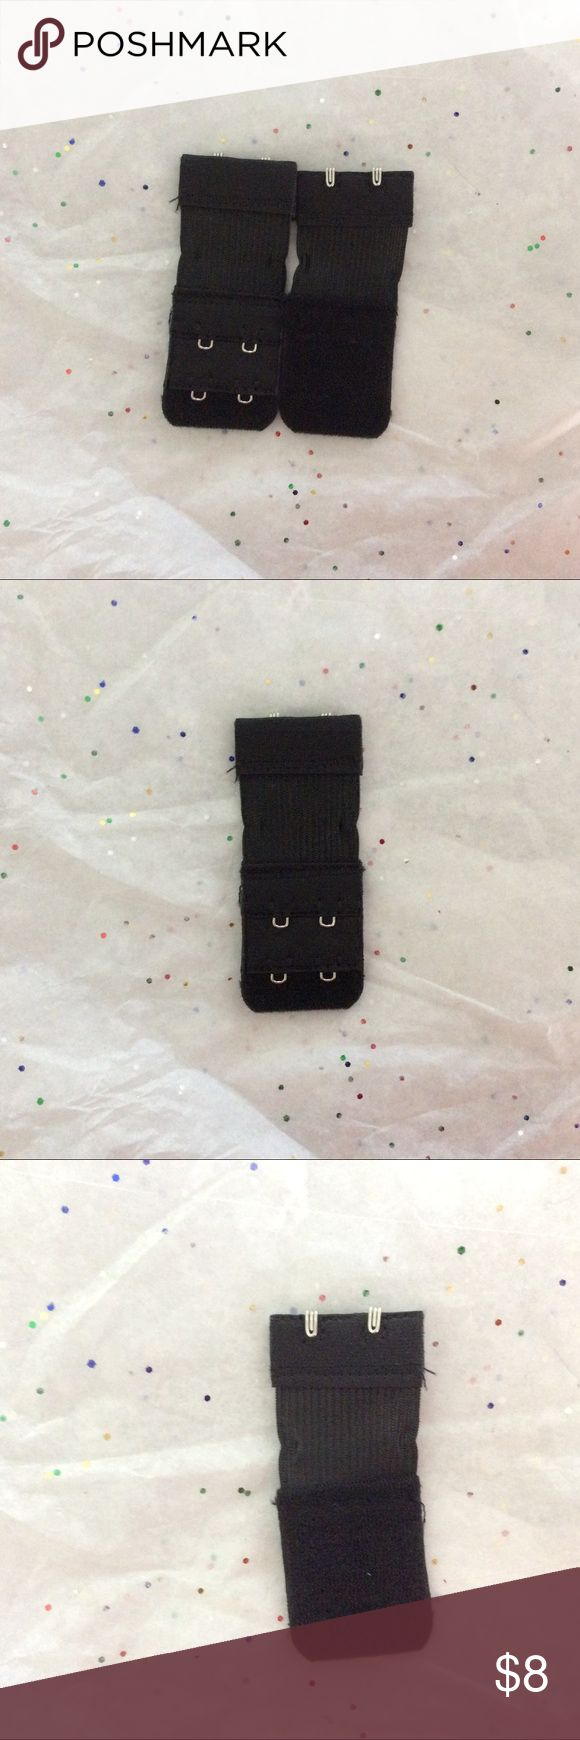 """TWO CLIP BRA EXTENDERS   """"NWOT"""" """"NWOT"""" TWO CLIP BRA EXTENDER BLACK...(brnbx) SORRY NO TRADES. Accessories"""